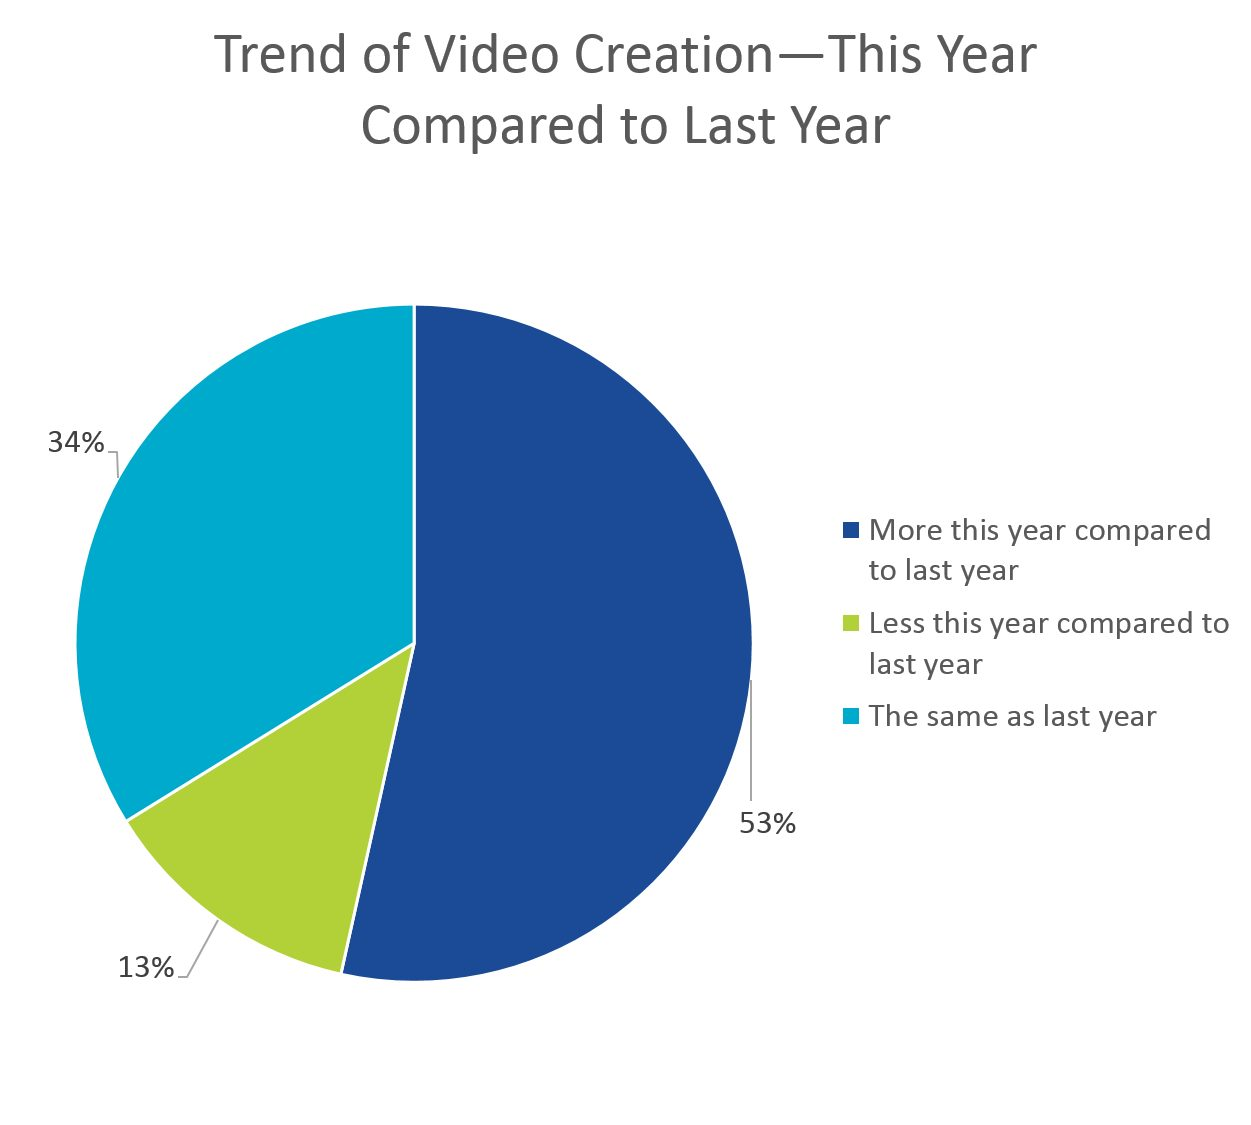 trend of video creation by employees